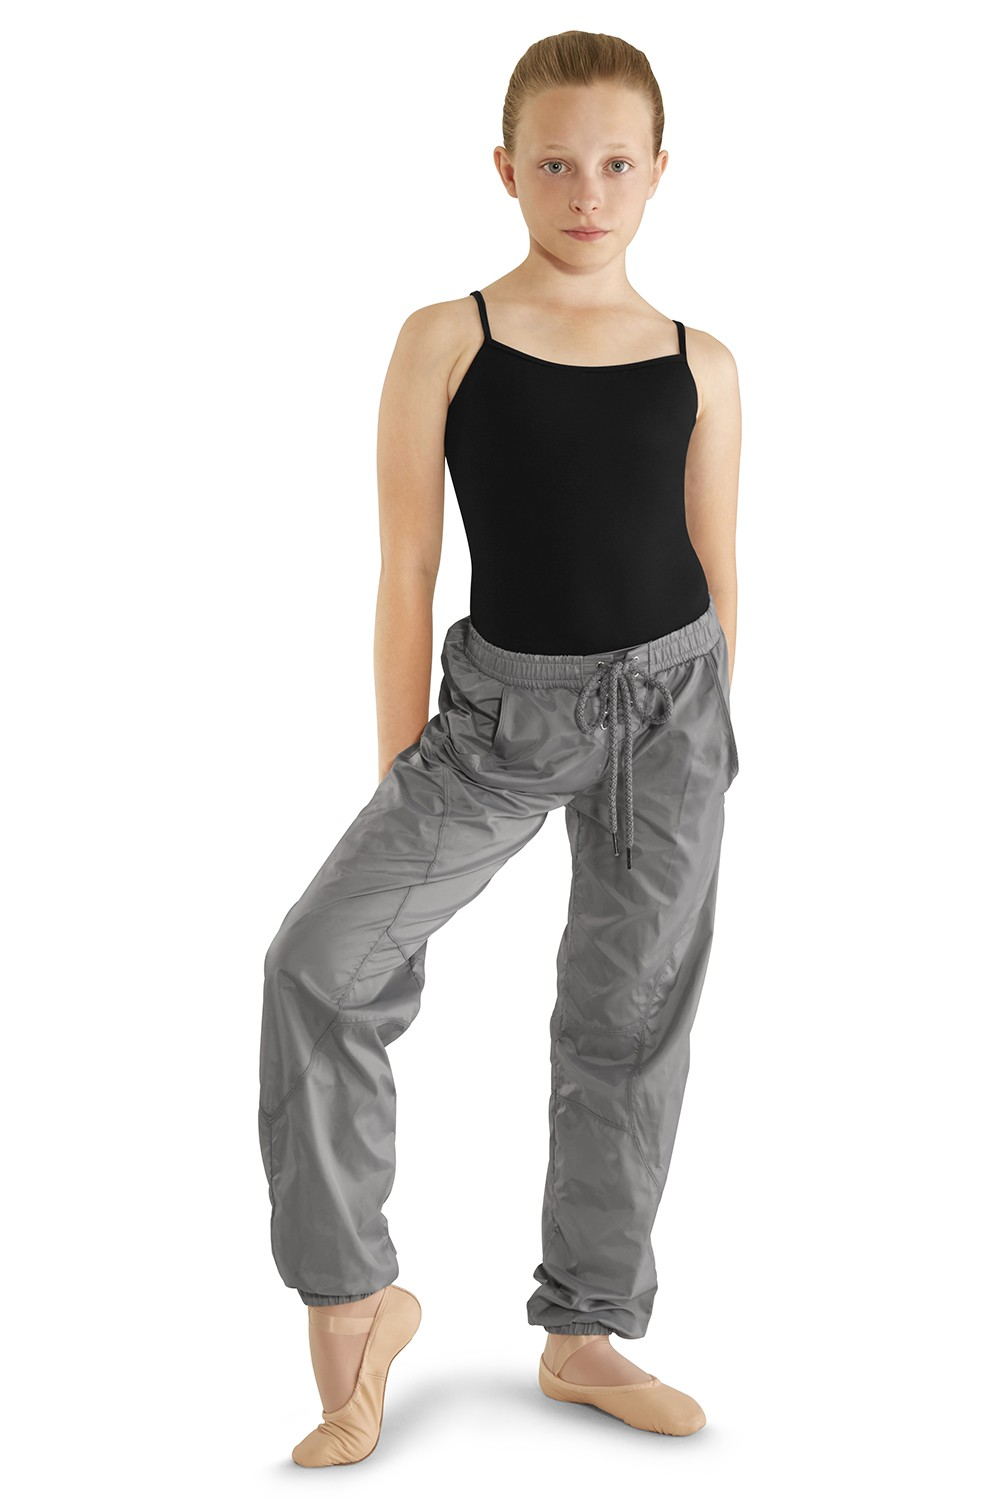 Ripstop Panelled Pants Children's Dance Warmups